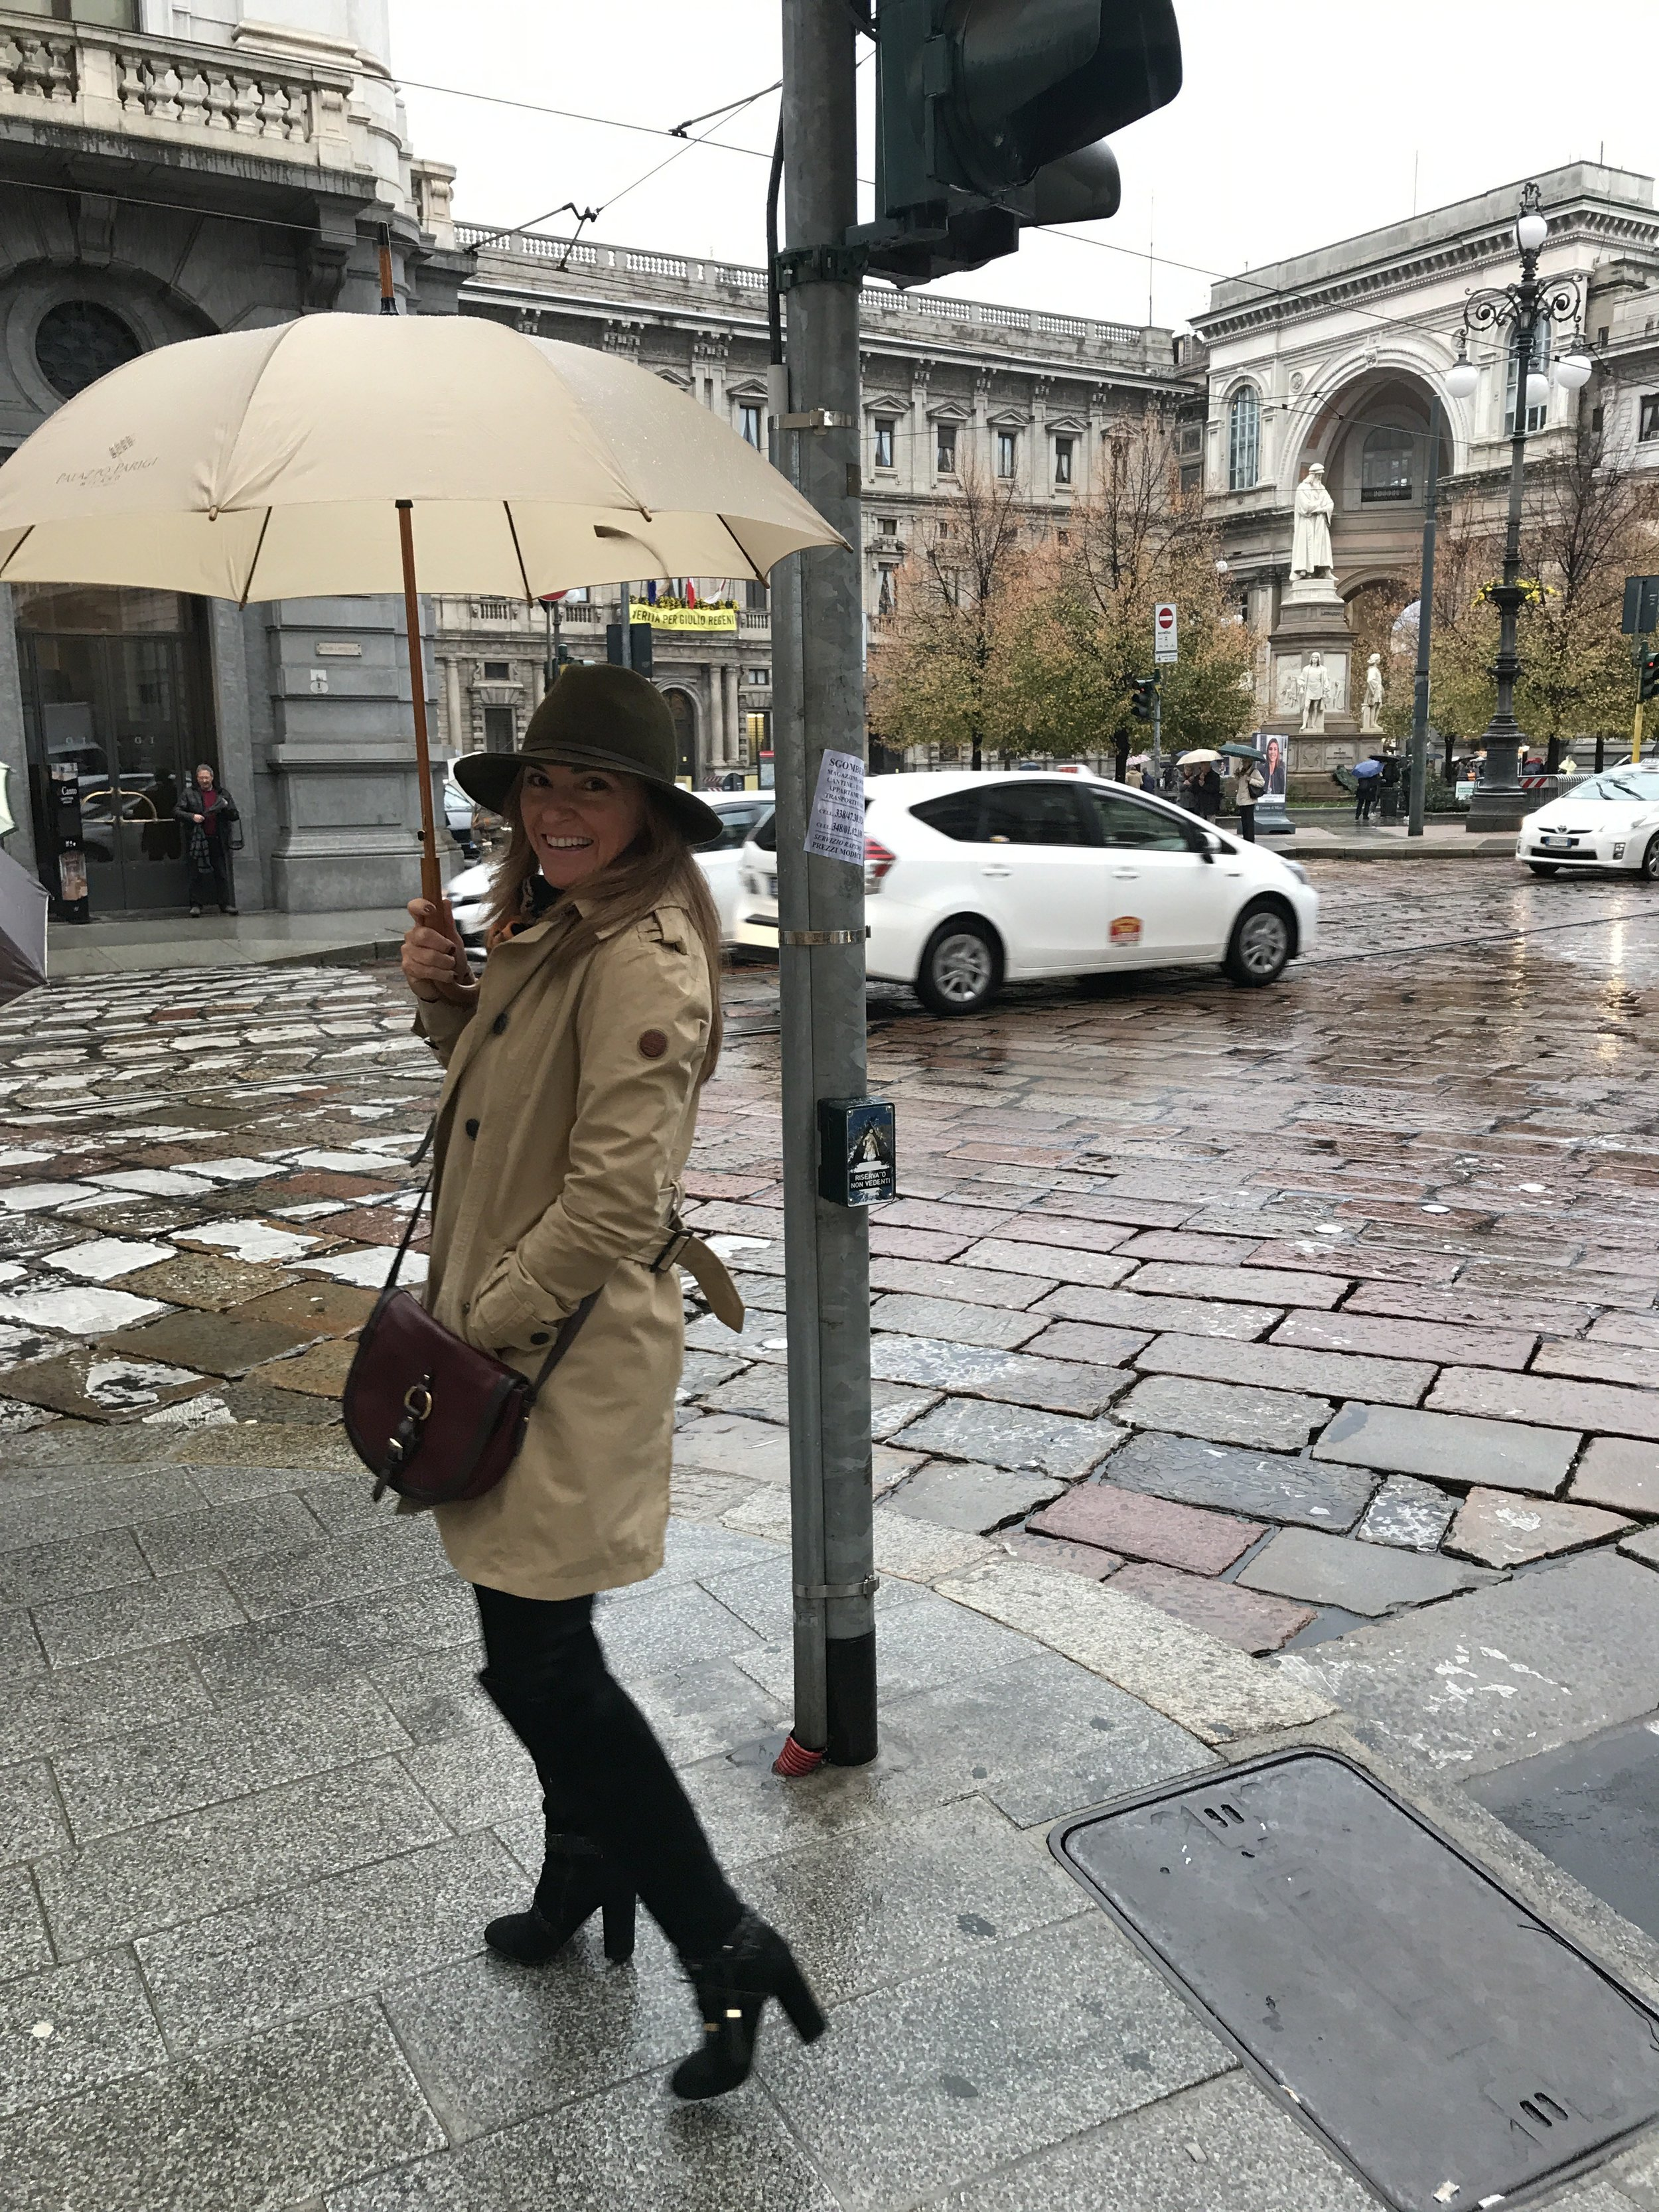 Rain and busy schedule didn't stop us from venturing into the city and uncover Milano!